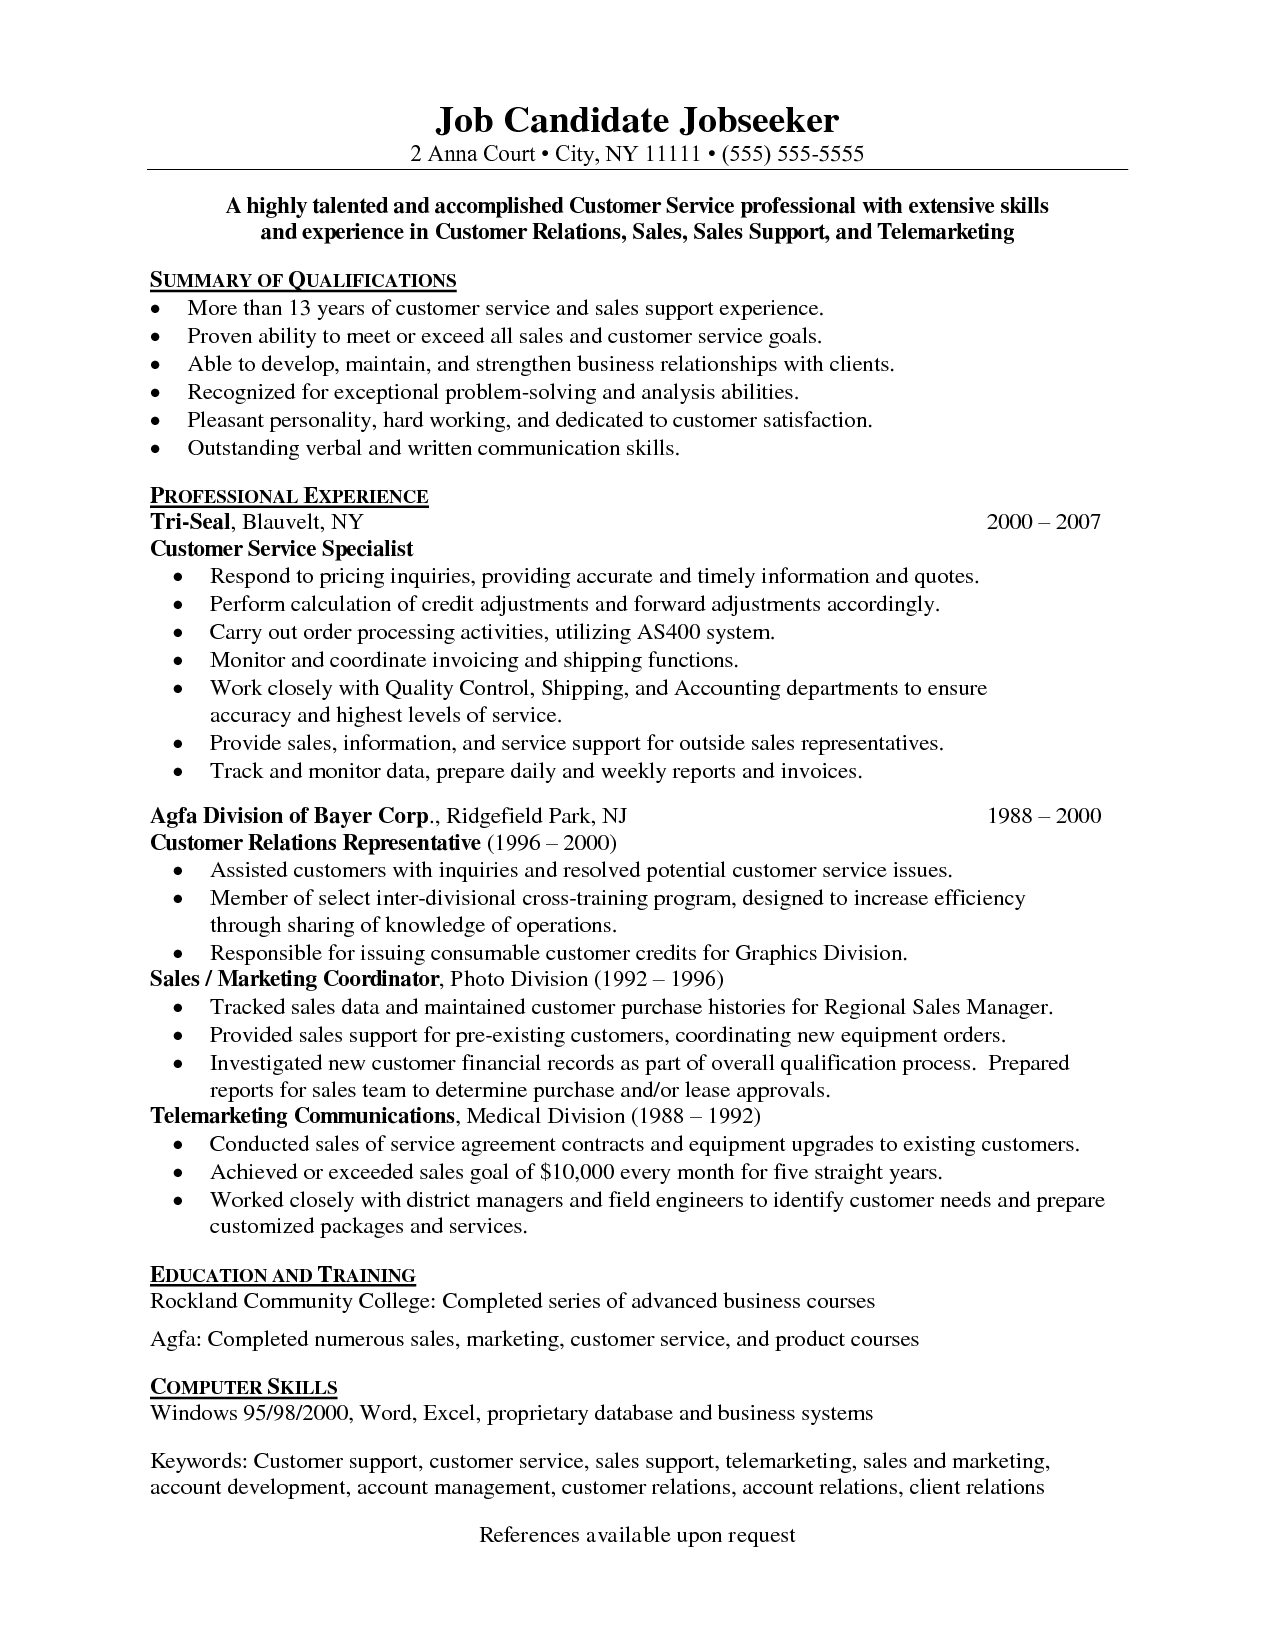 Customer service sales resume examples